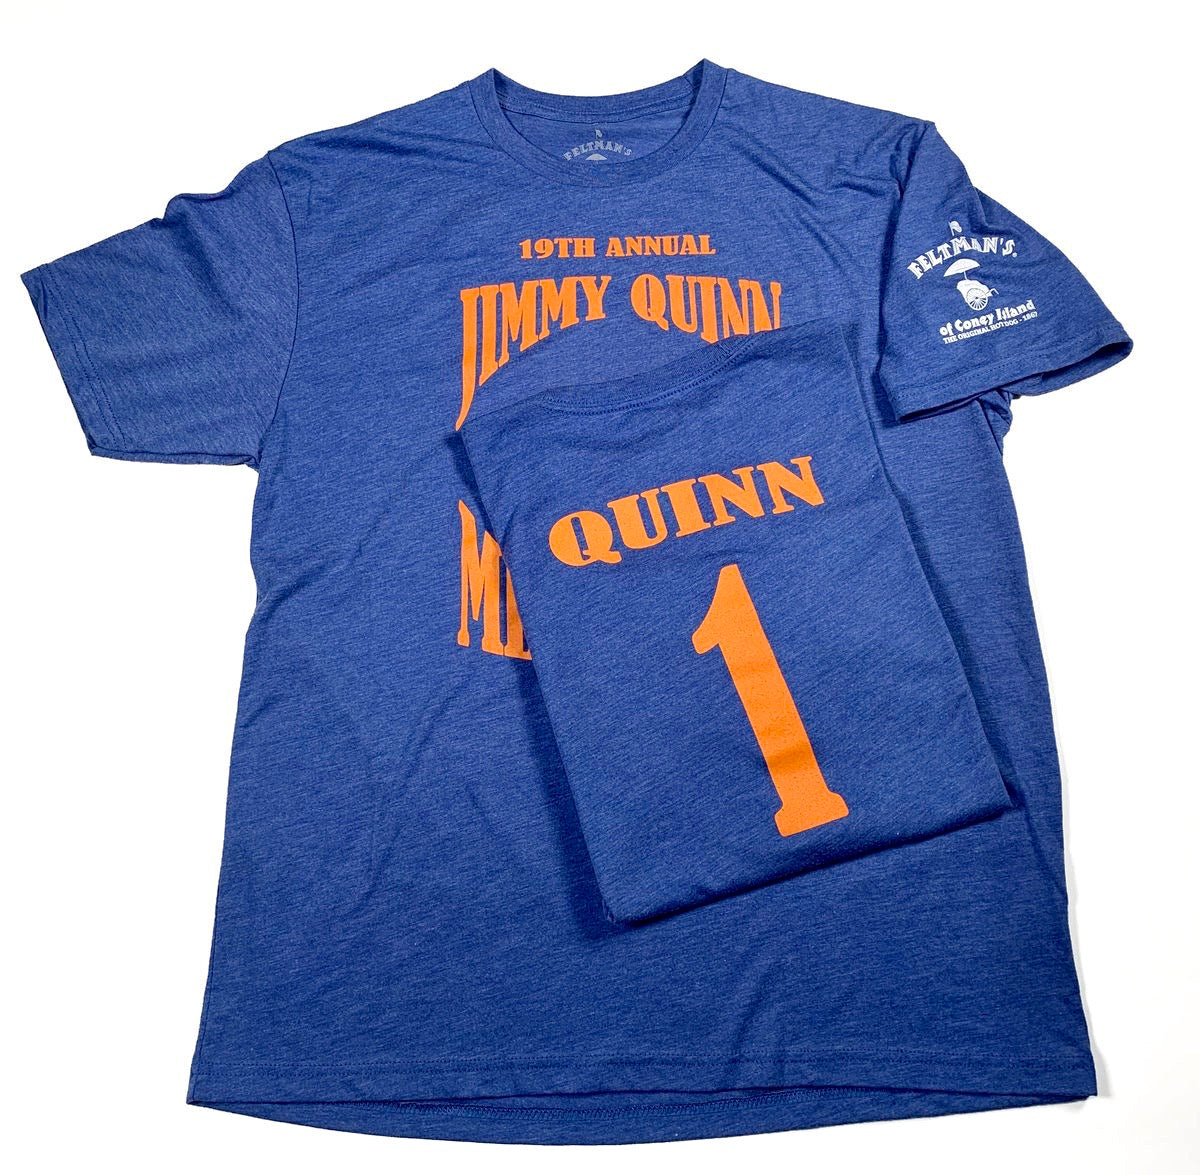 Jimmy Quinn Memorial Shirt